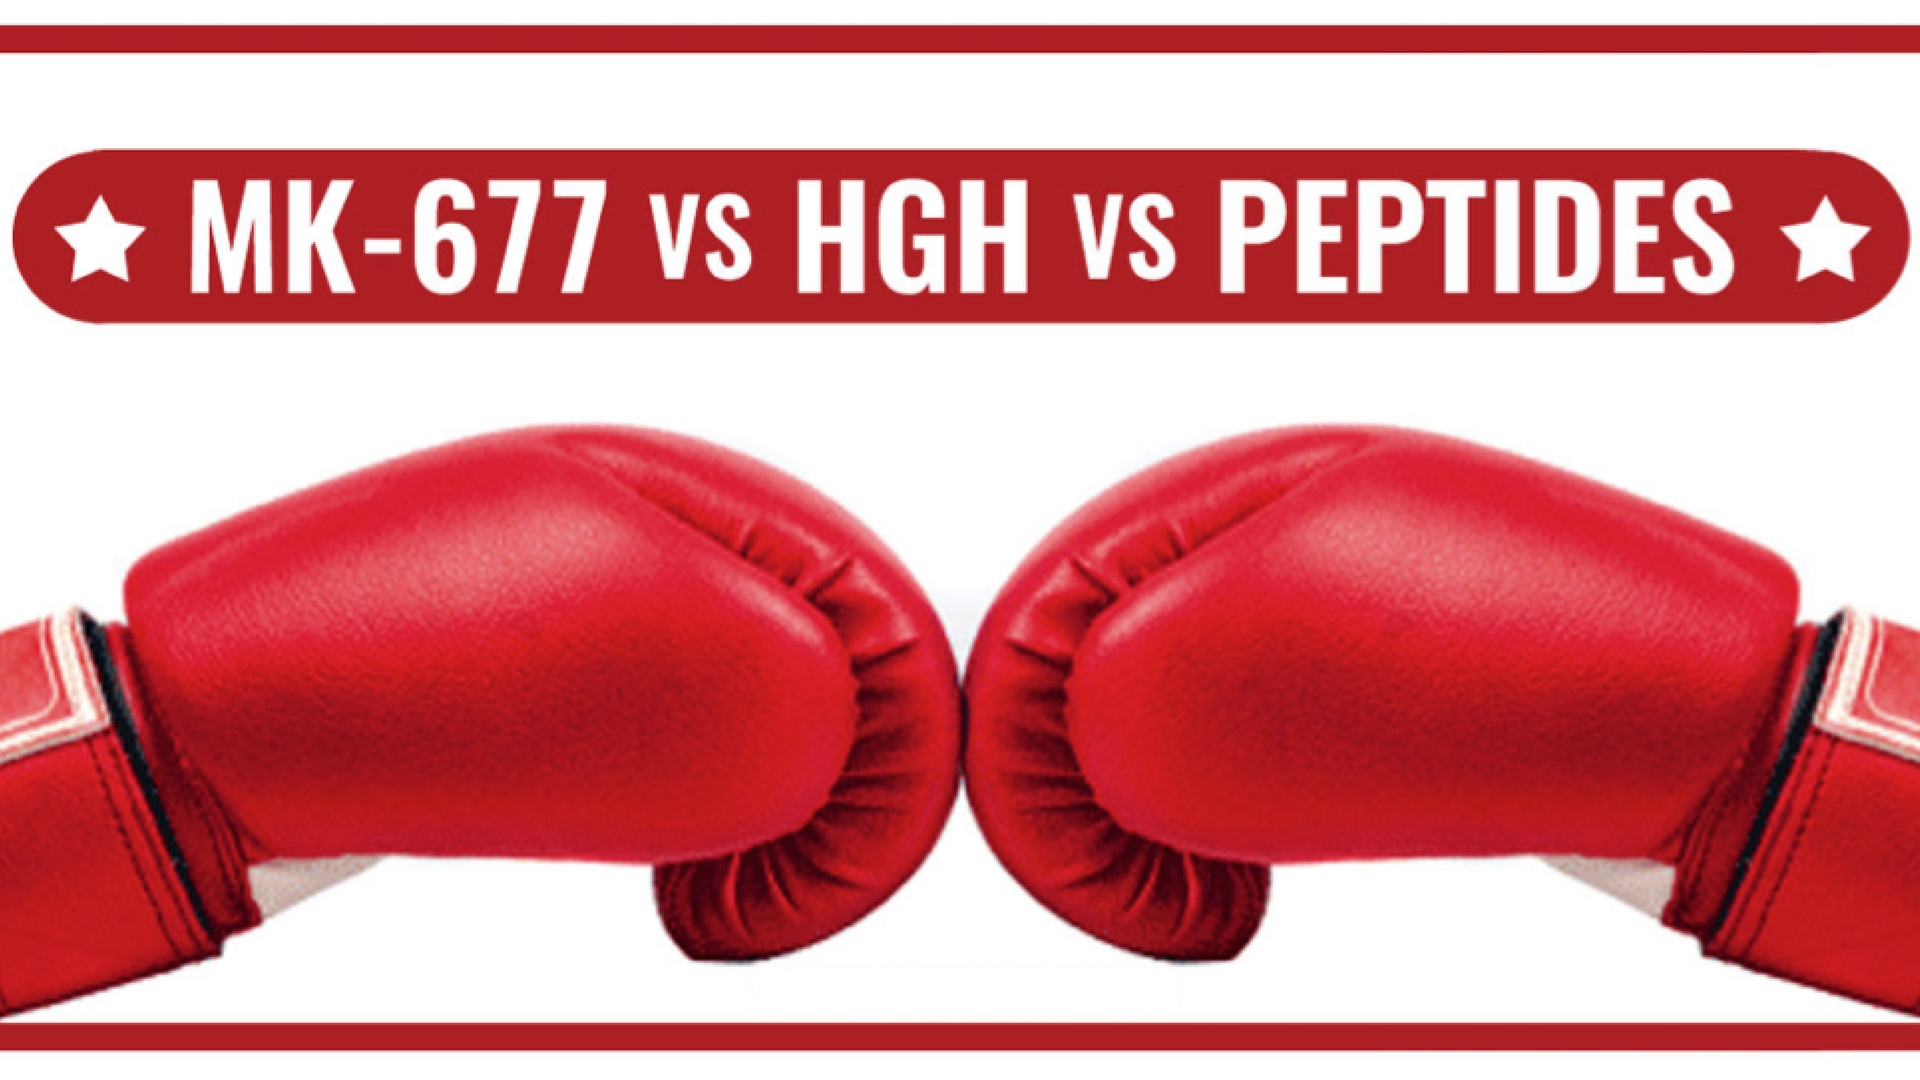 MK-677 Vs HGH Vs Peptides - Which Is Better And Why?